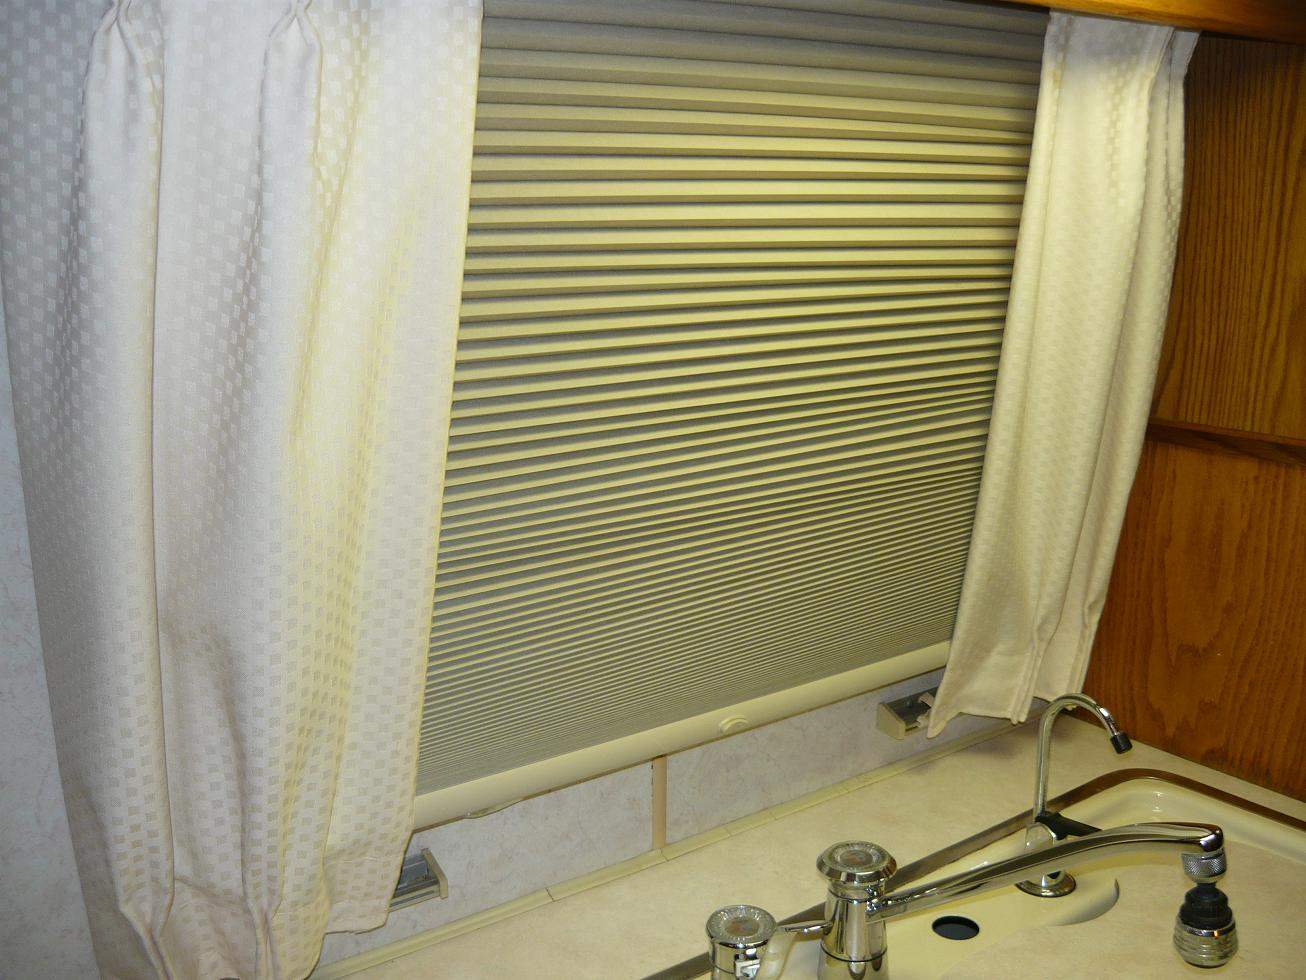 Click image for larger version  Name:Blinds.jpg Views:93 Size:177.6 KB ID:86918